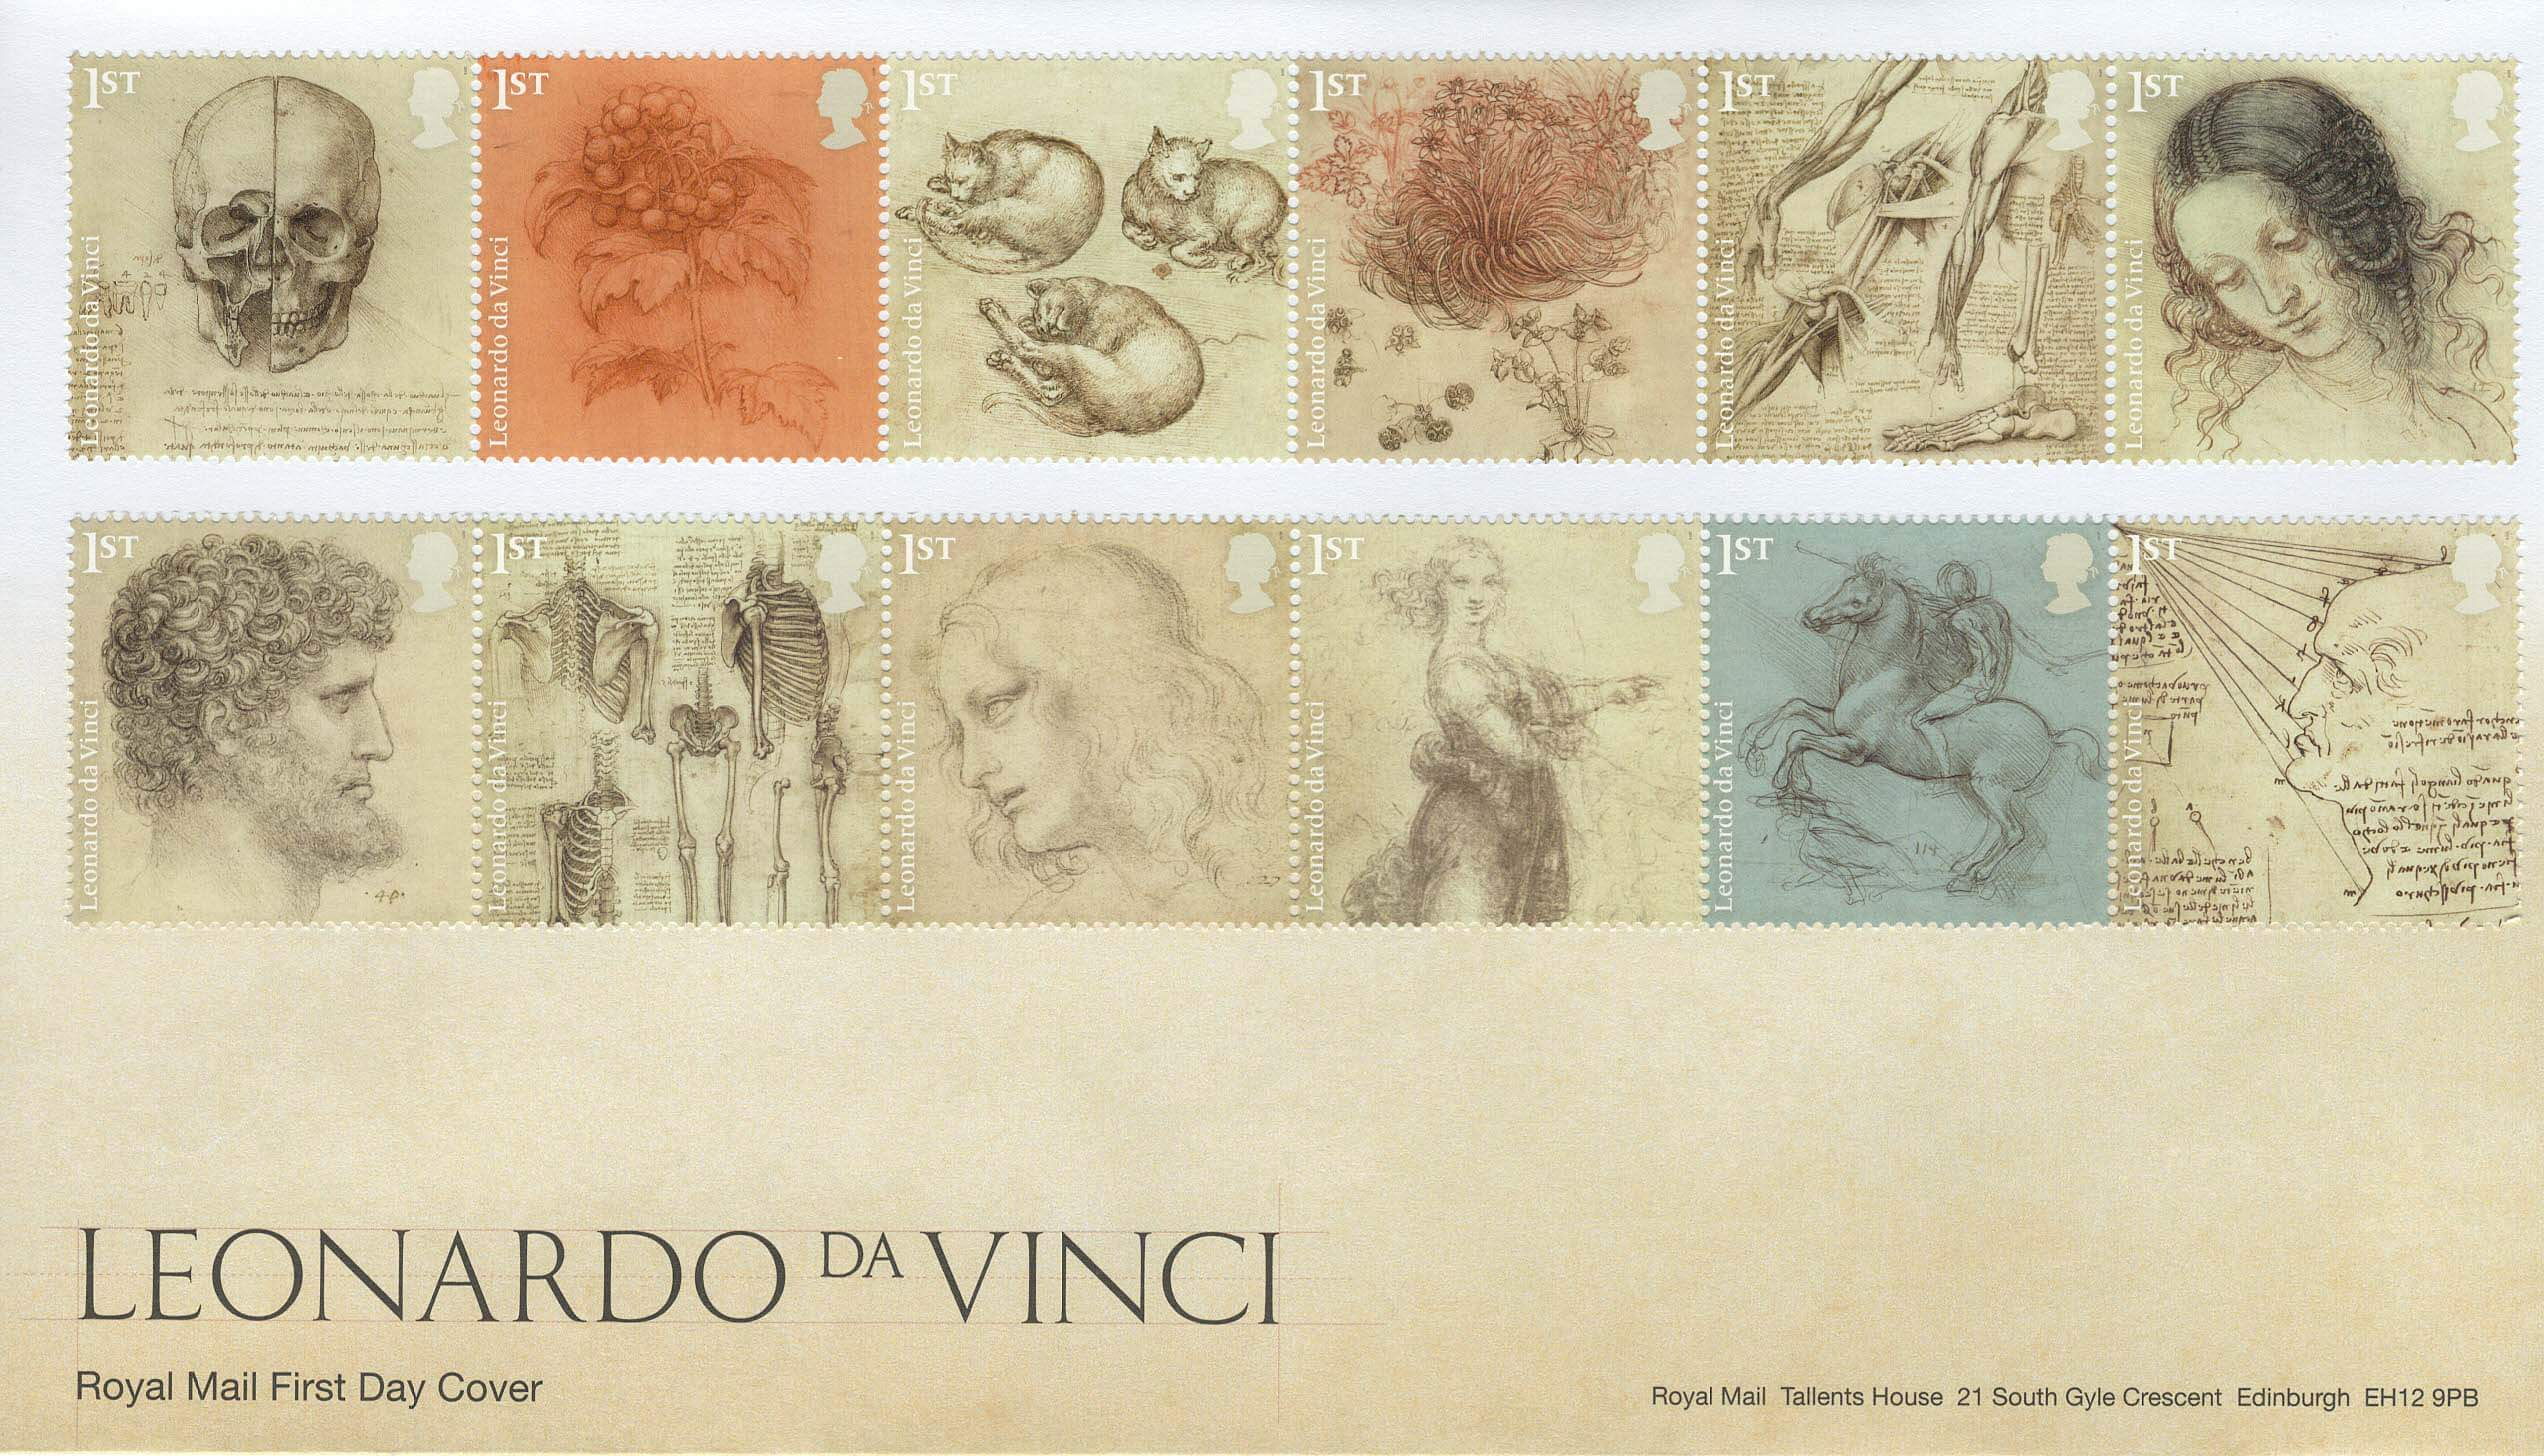 2019 begins with our Stamp Classics and Leonardo da Vinci Issues